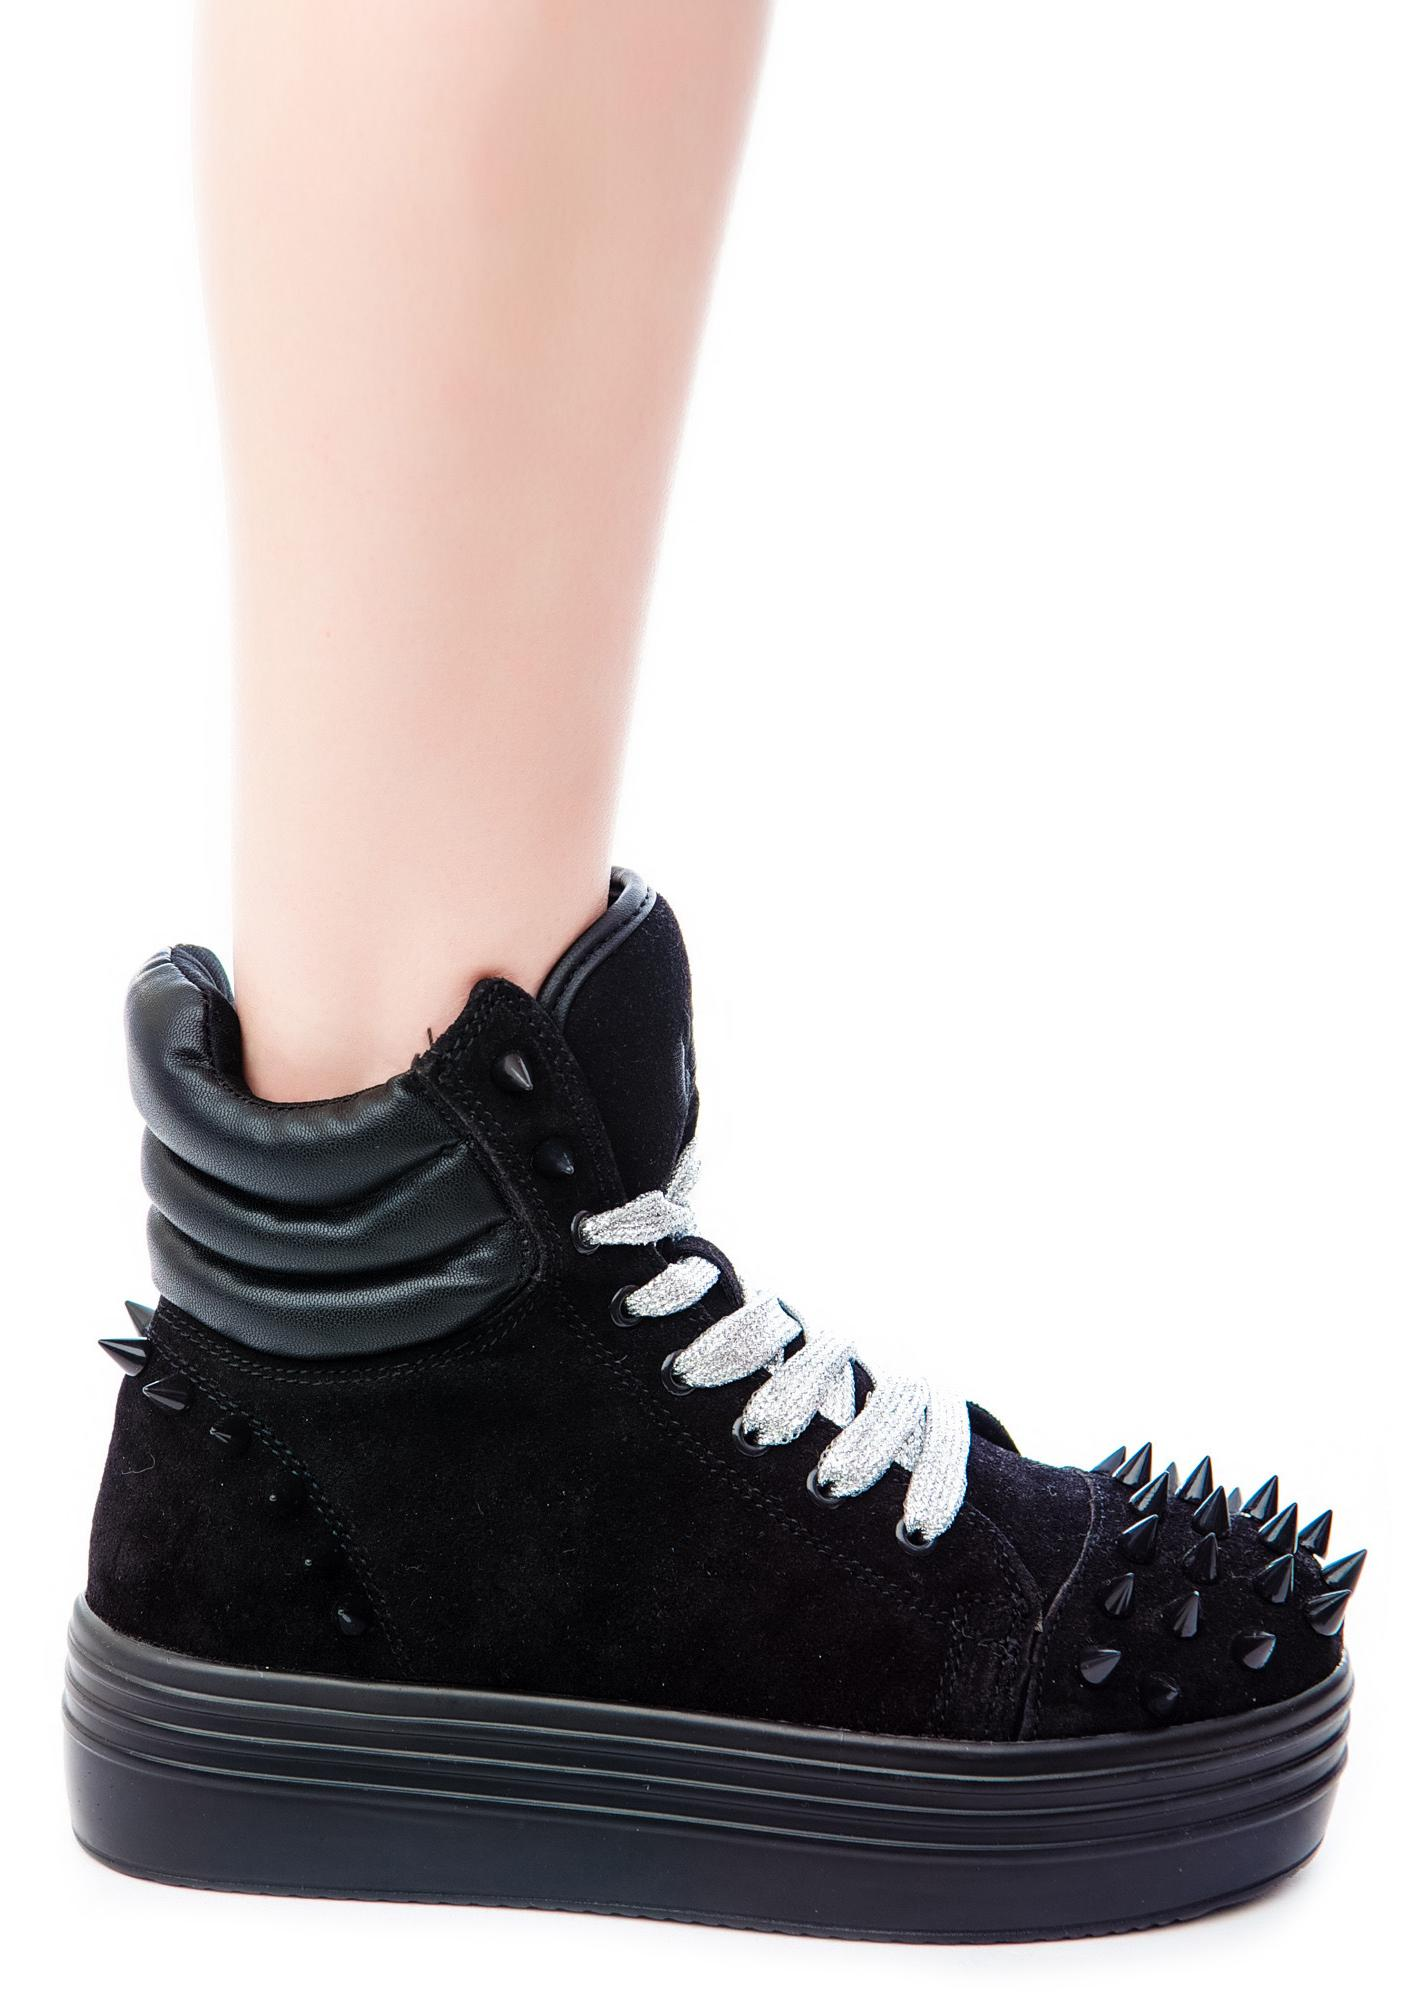 Lola Spiked High Top Sneakers